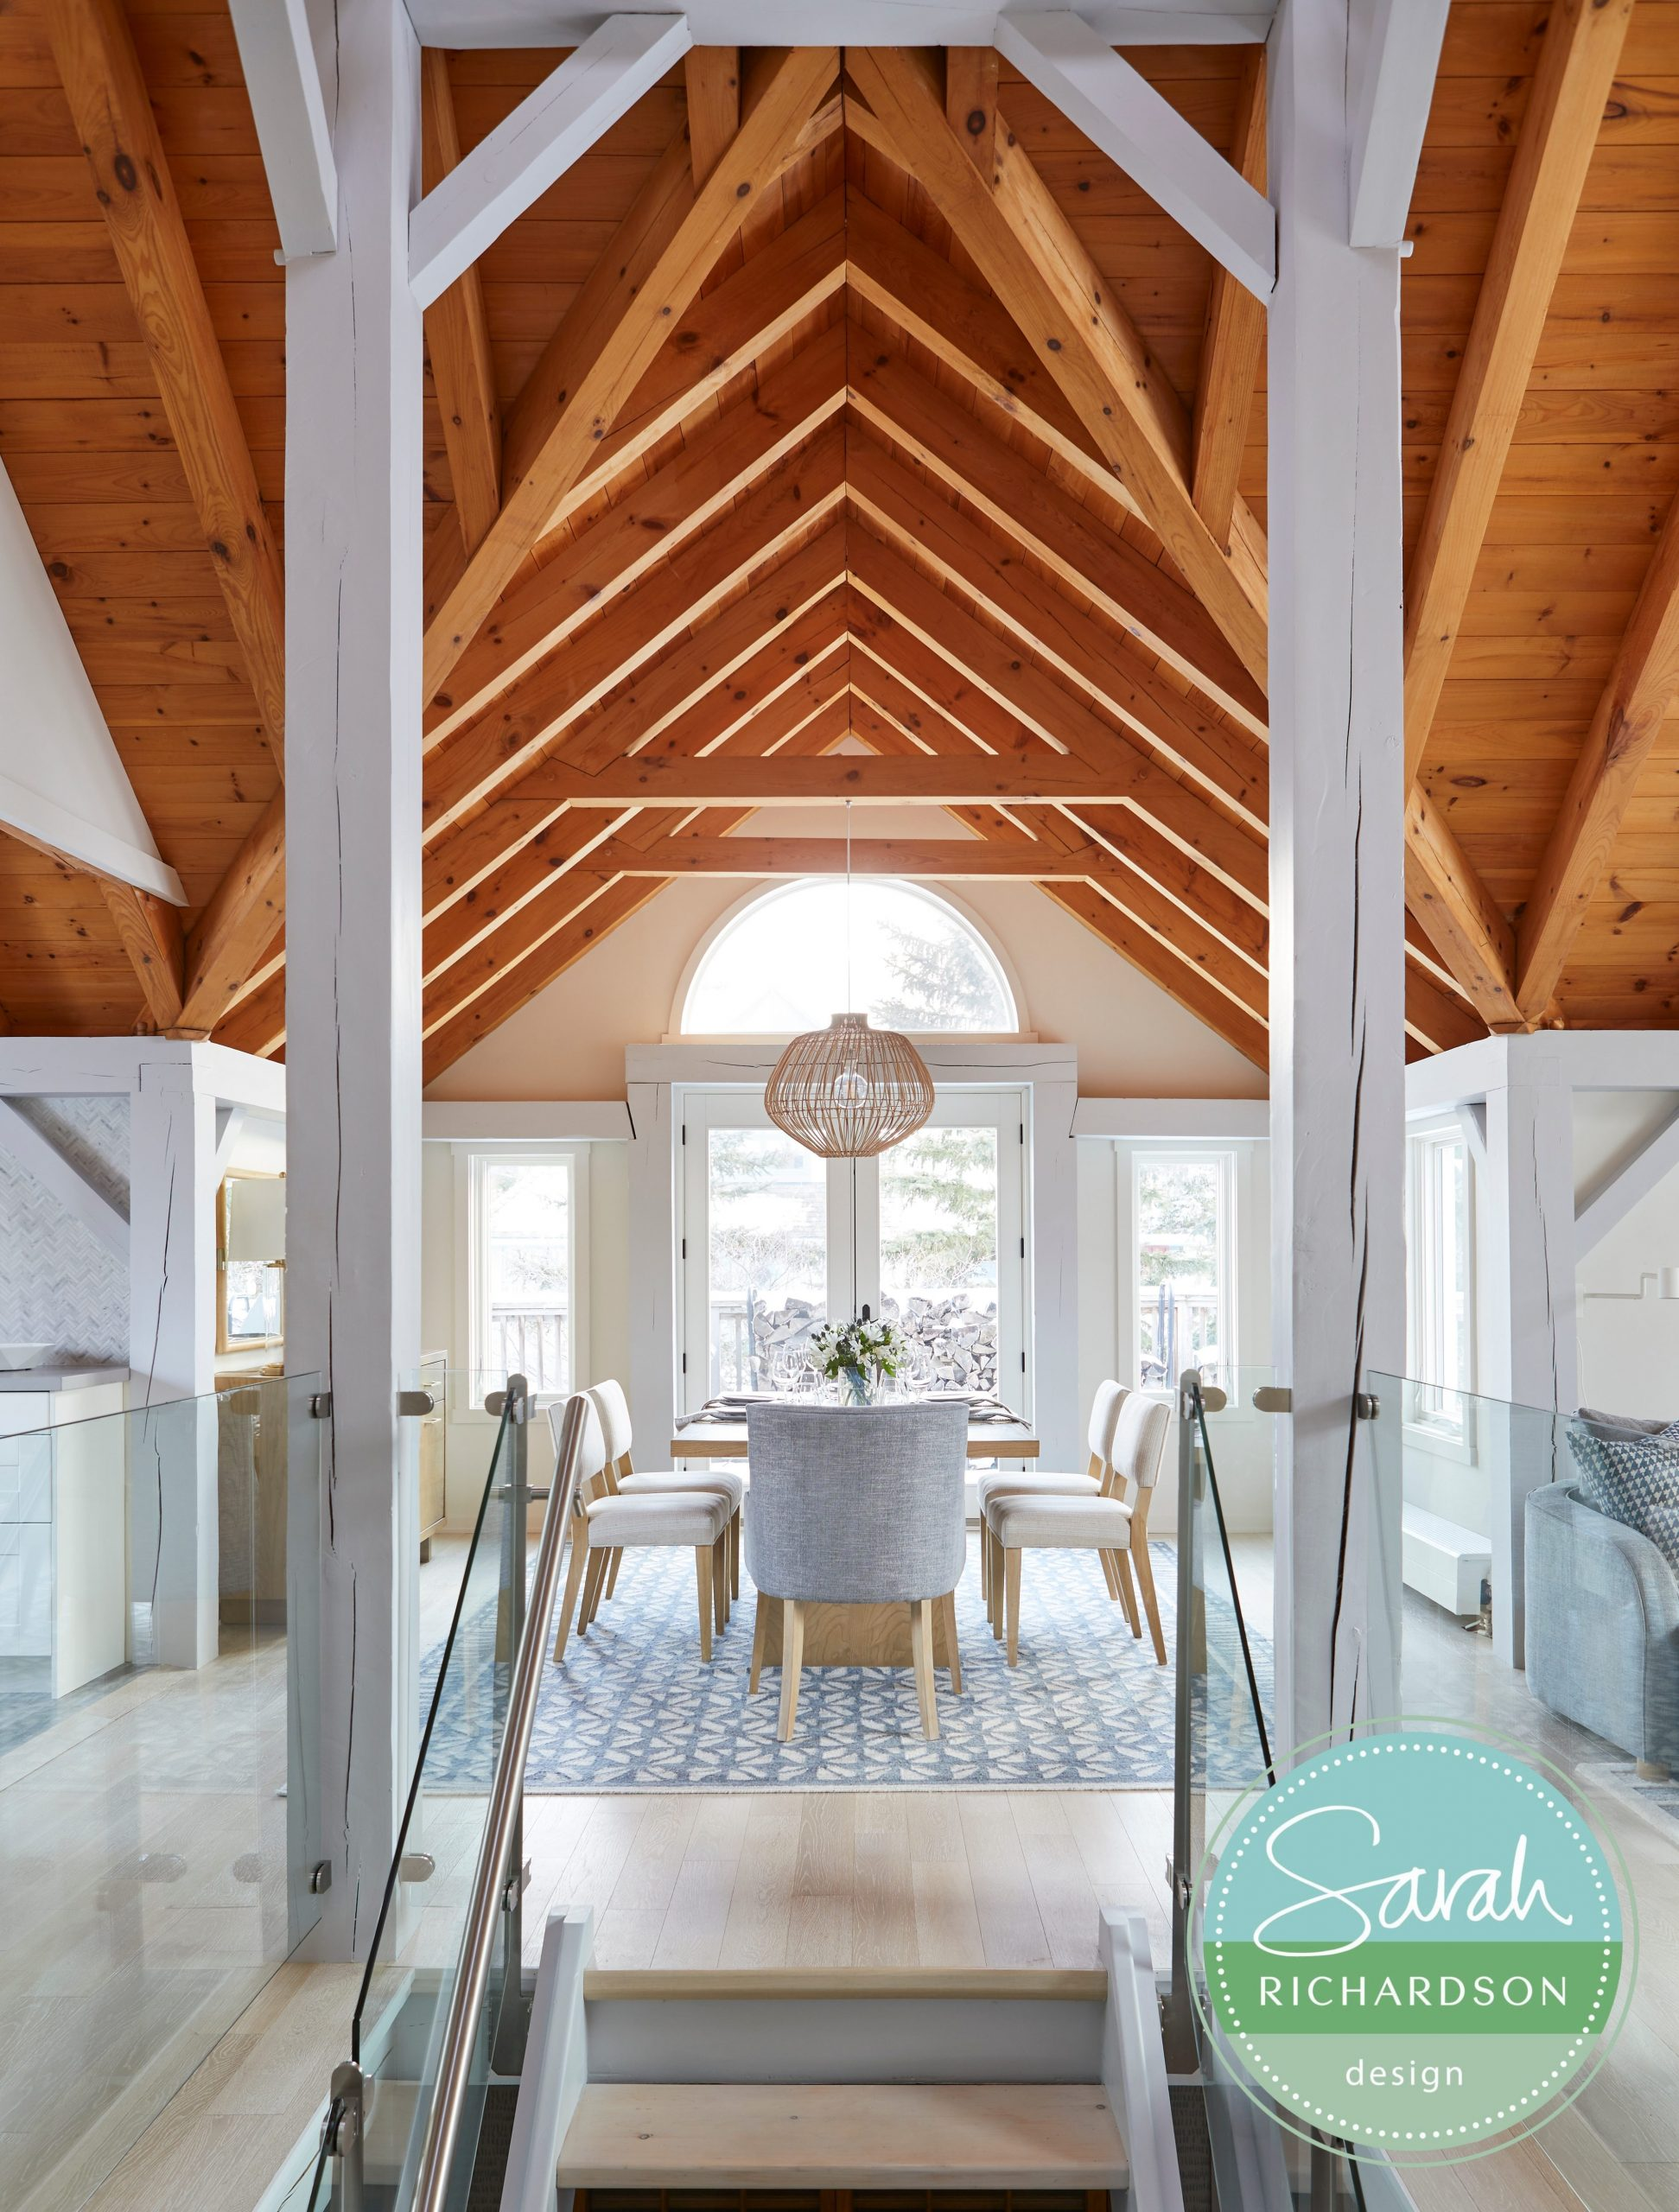 Normerica Timber Frames, Sarah Richardson Design, Dining Room, Cathedral Ceiling, Painted Timbers, Natural Timbers